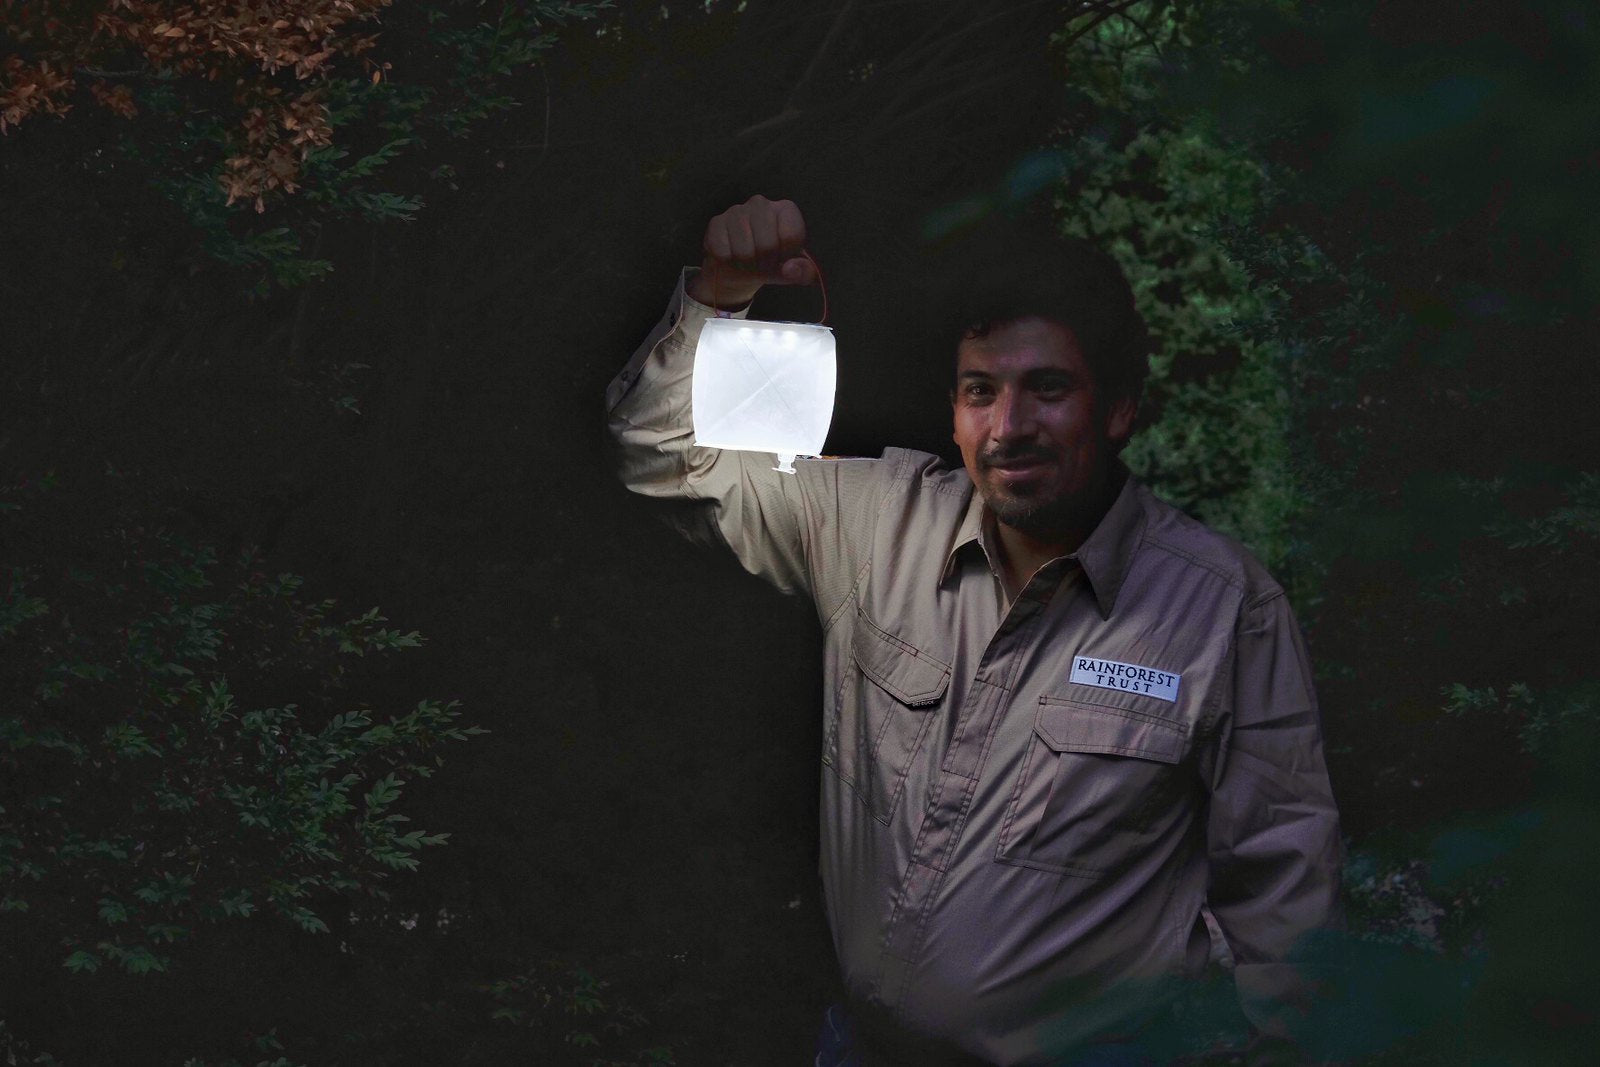 Notes From the Field: Protecting the Rainforest with LuminAID Lights